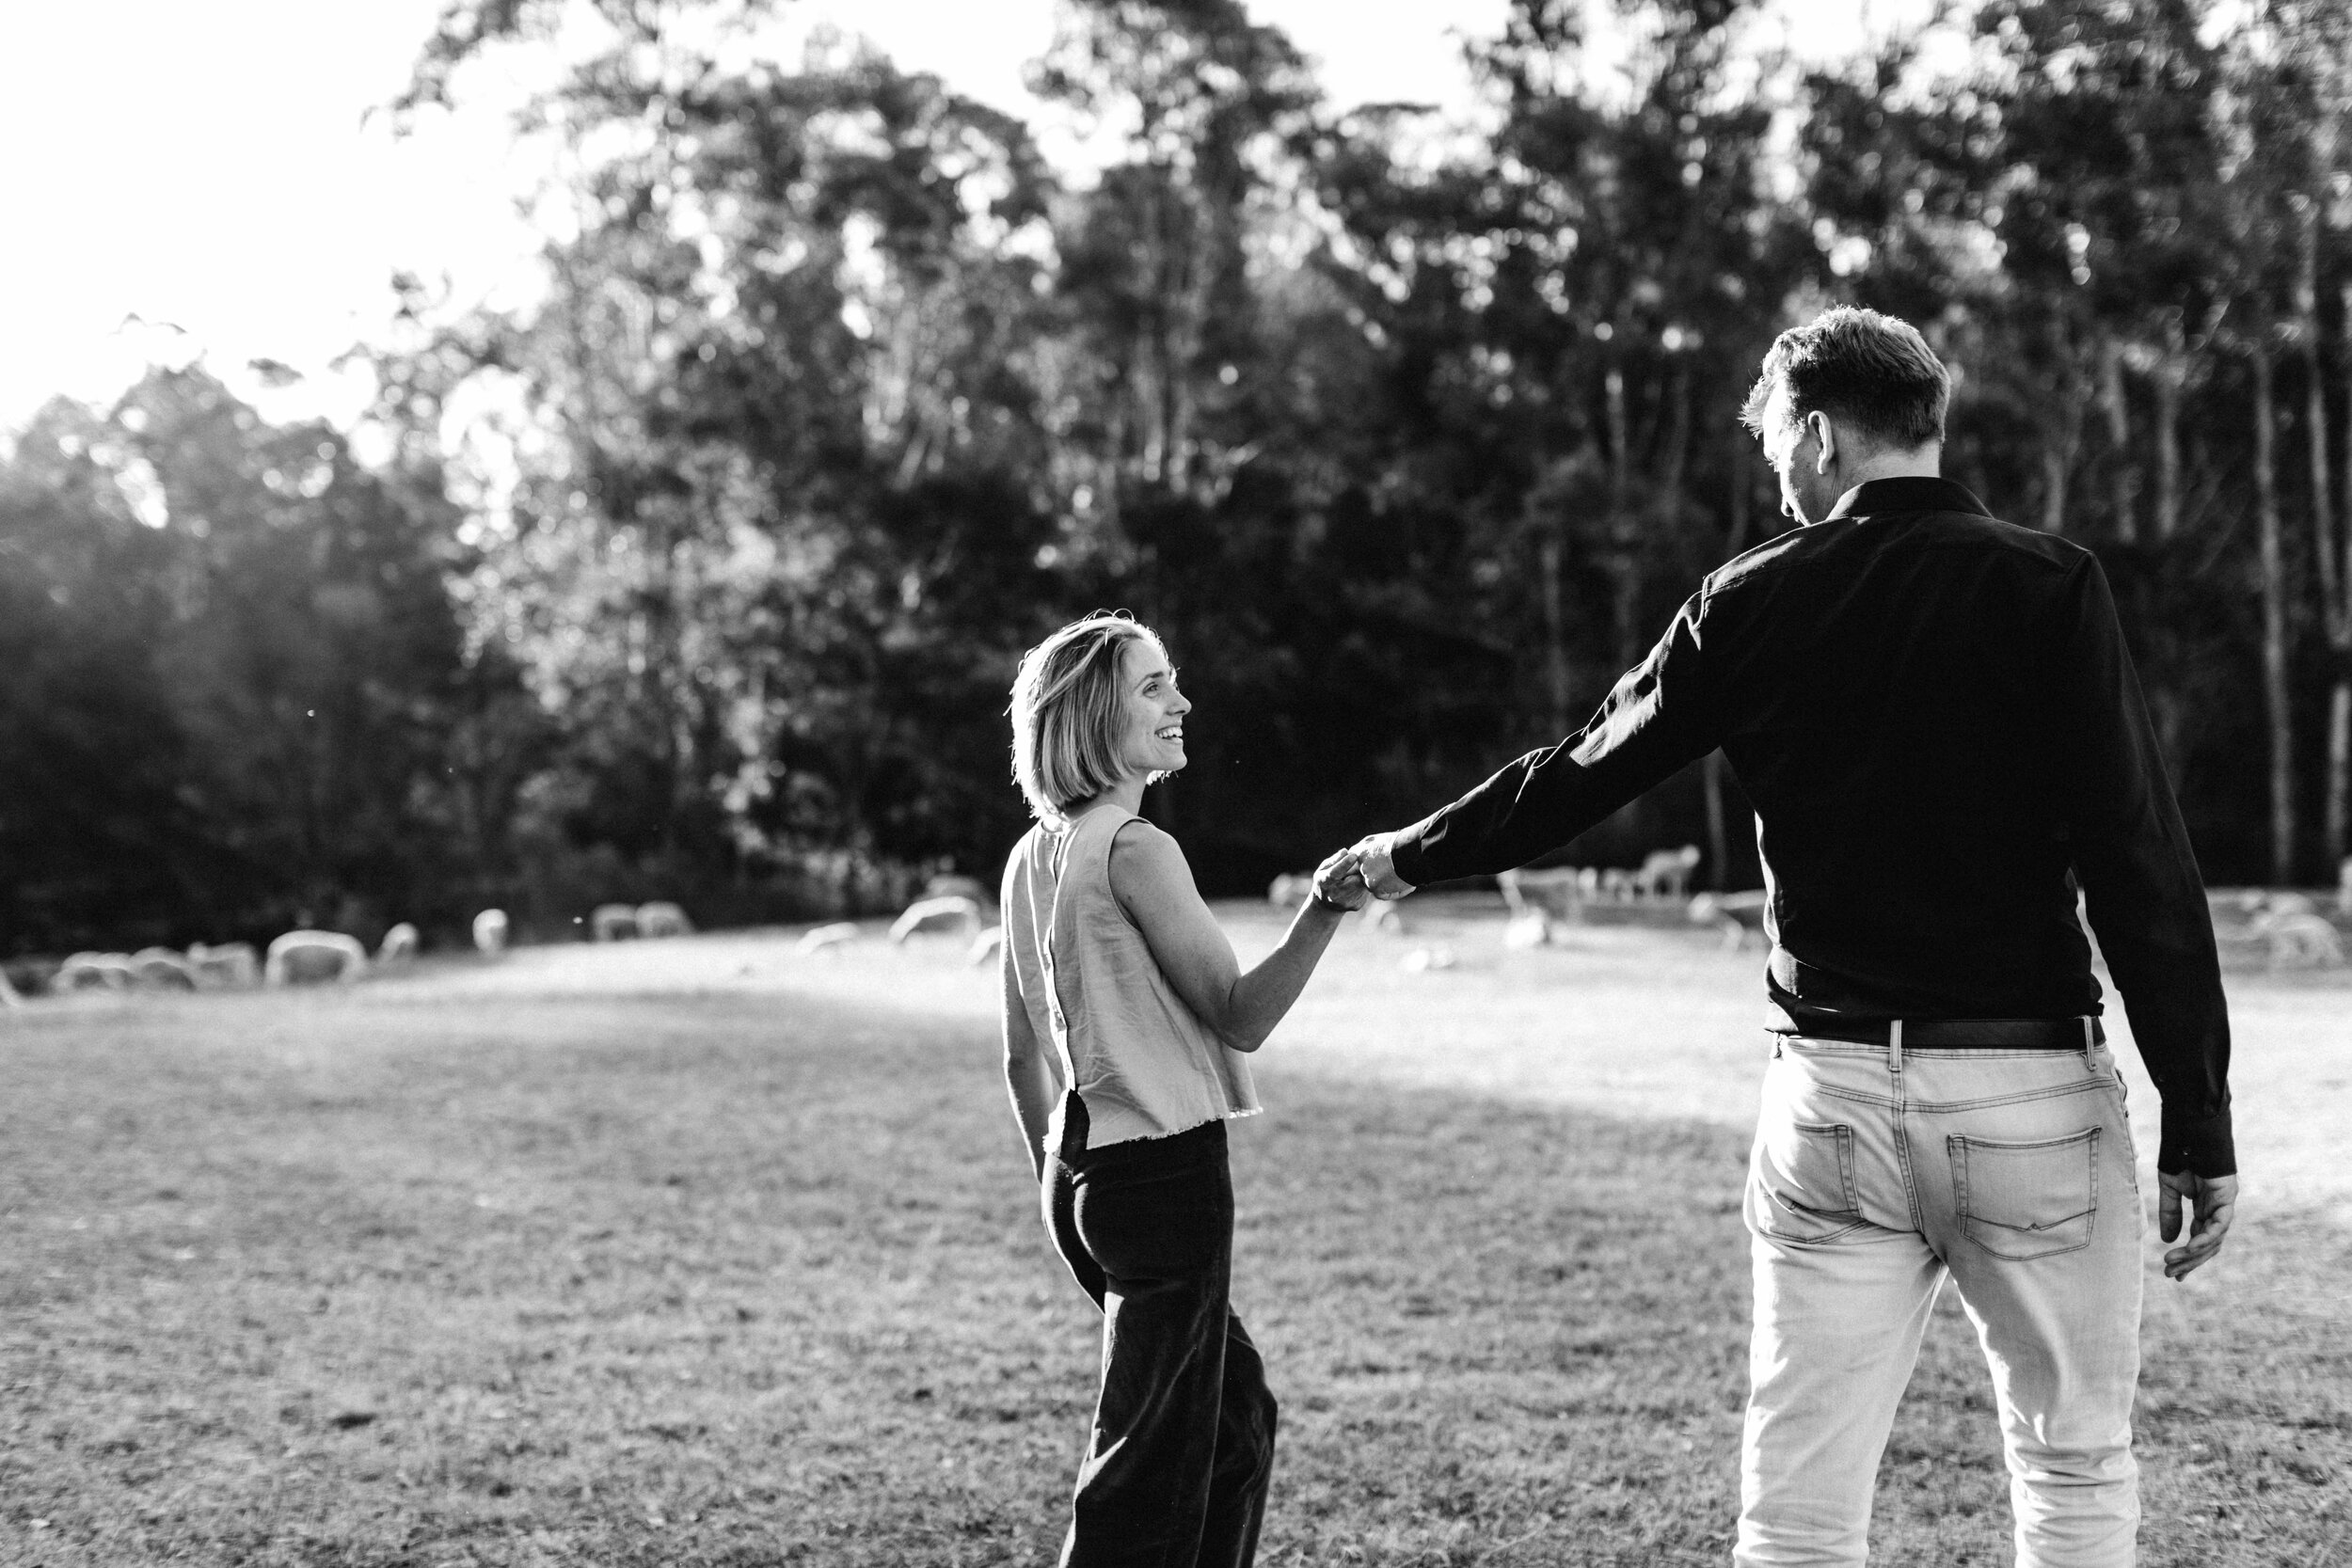 picton-engagement-photographer-wollondilly-david-esther-8.jpg